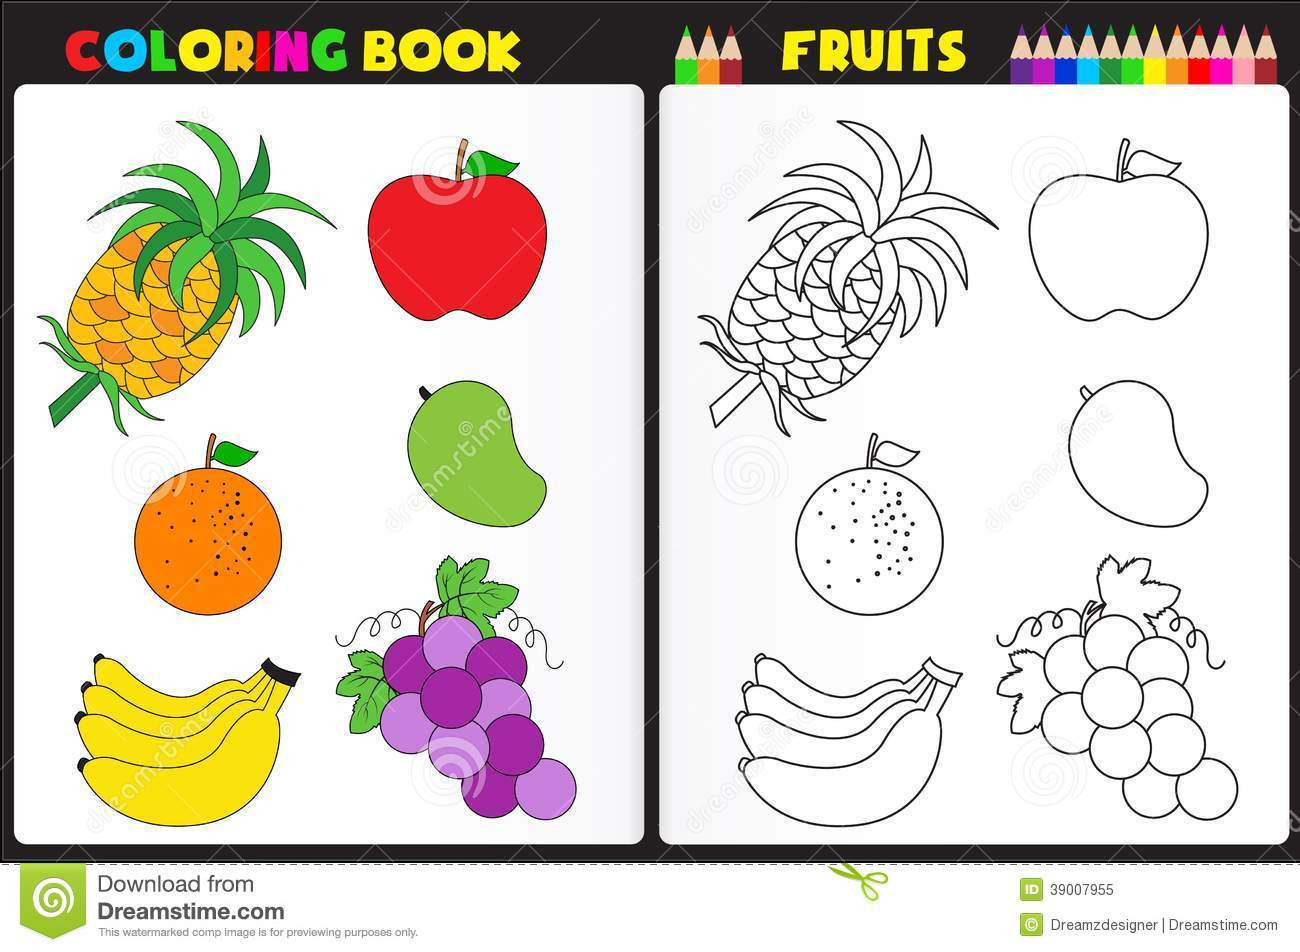 Nature coloring book page for kids with colorful fruits and sketches to color